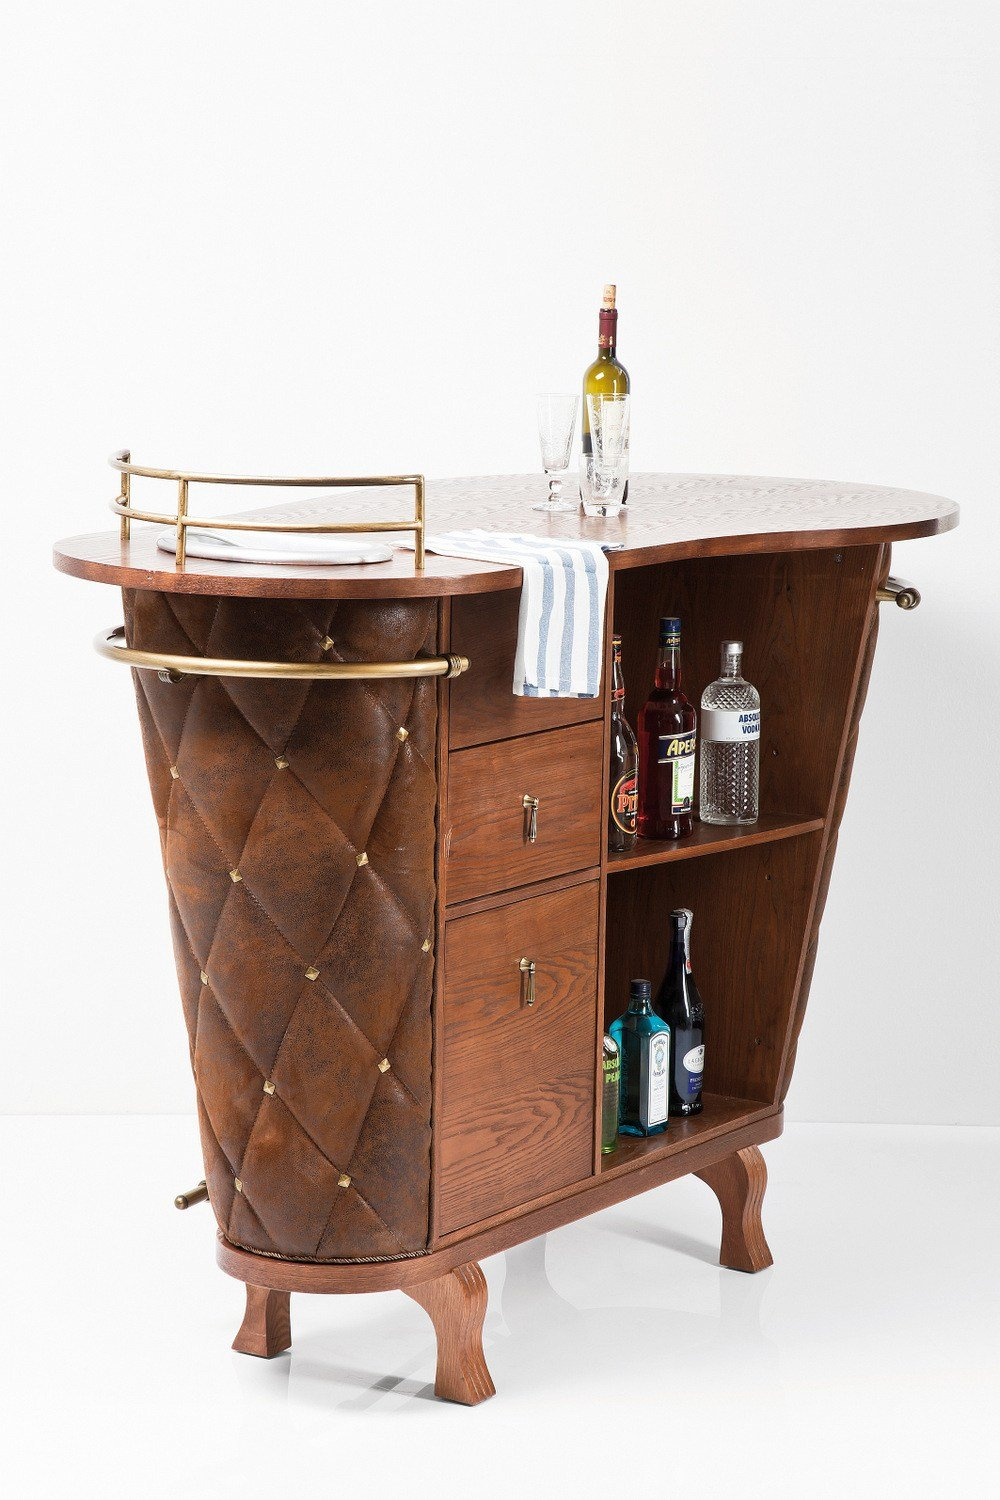 Rockstar vintage meuble bar by kare design for Bar meuble design